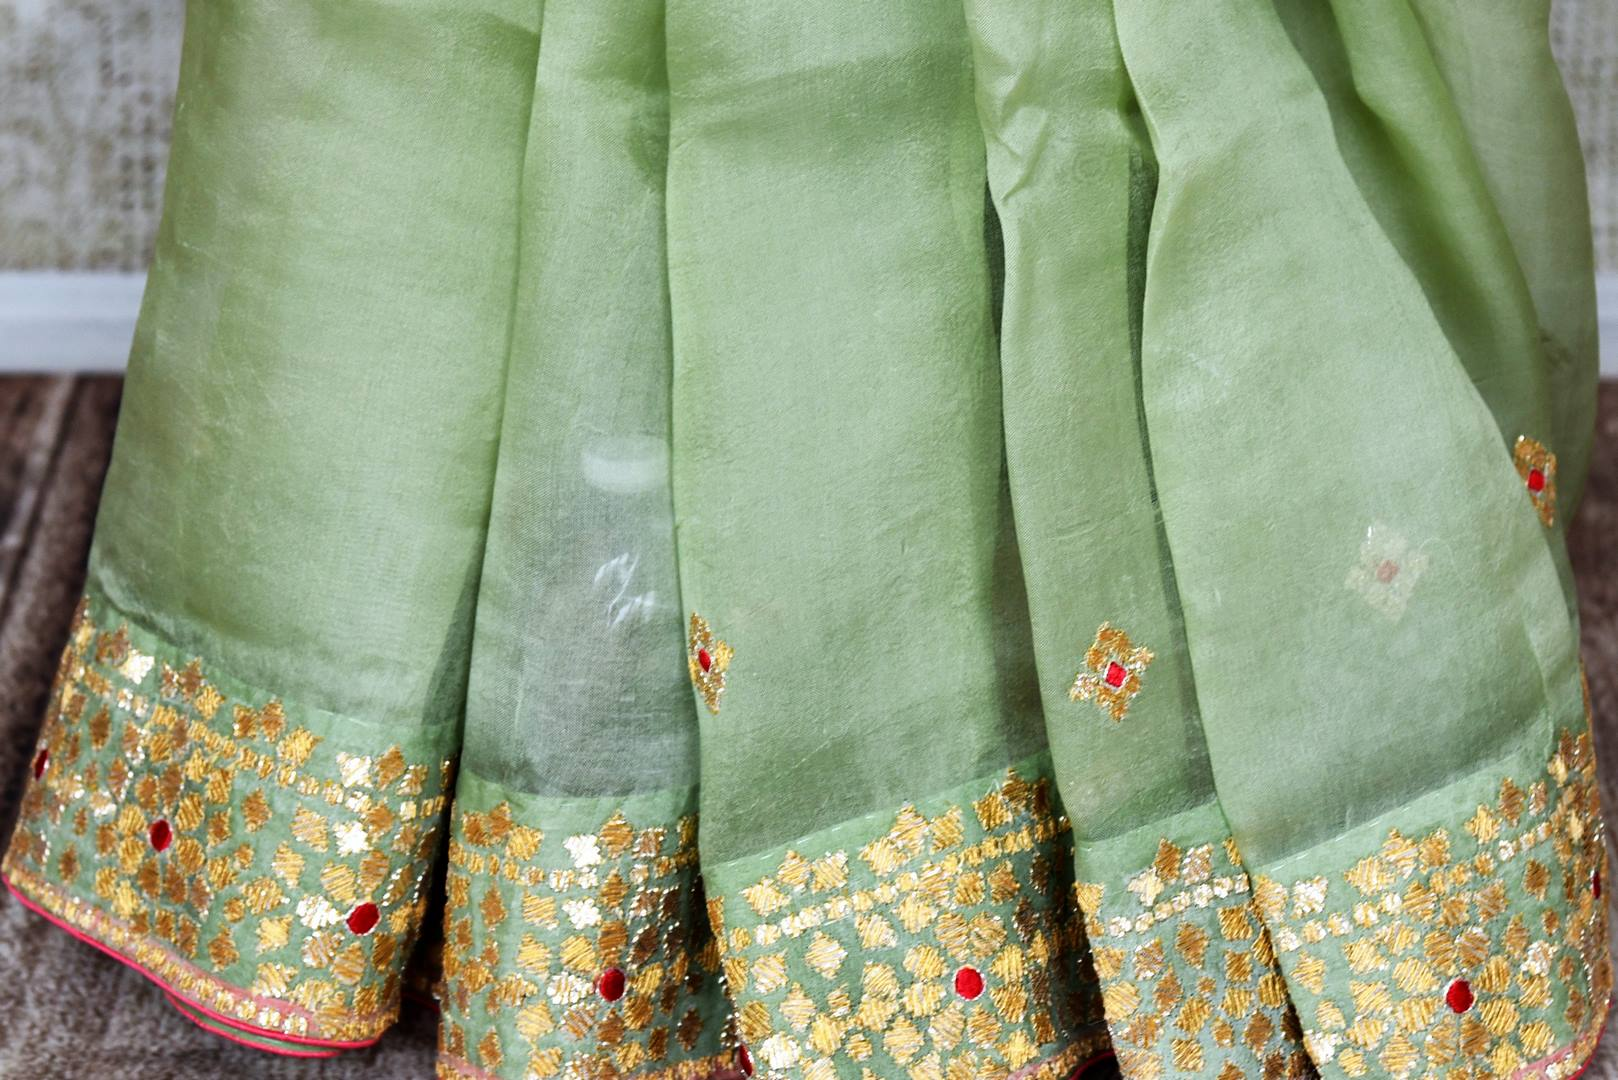 Shop pista green gota patti embroidery organza saree online in USA. Shop more such Indian designer sarees, embroidered sarees, pure silk sarees in USA from Pure Elegance clothing fashion store this wedding season.-pleats